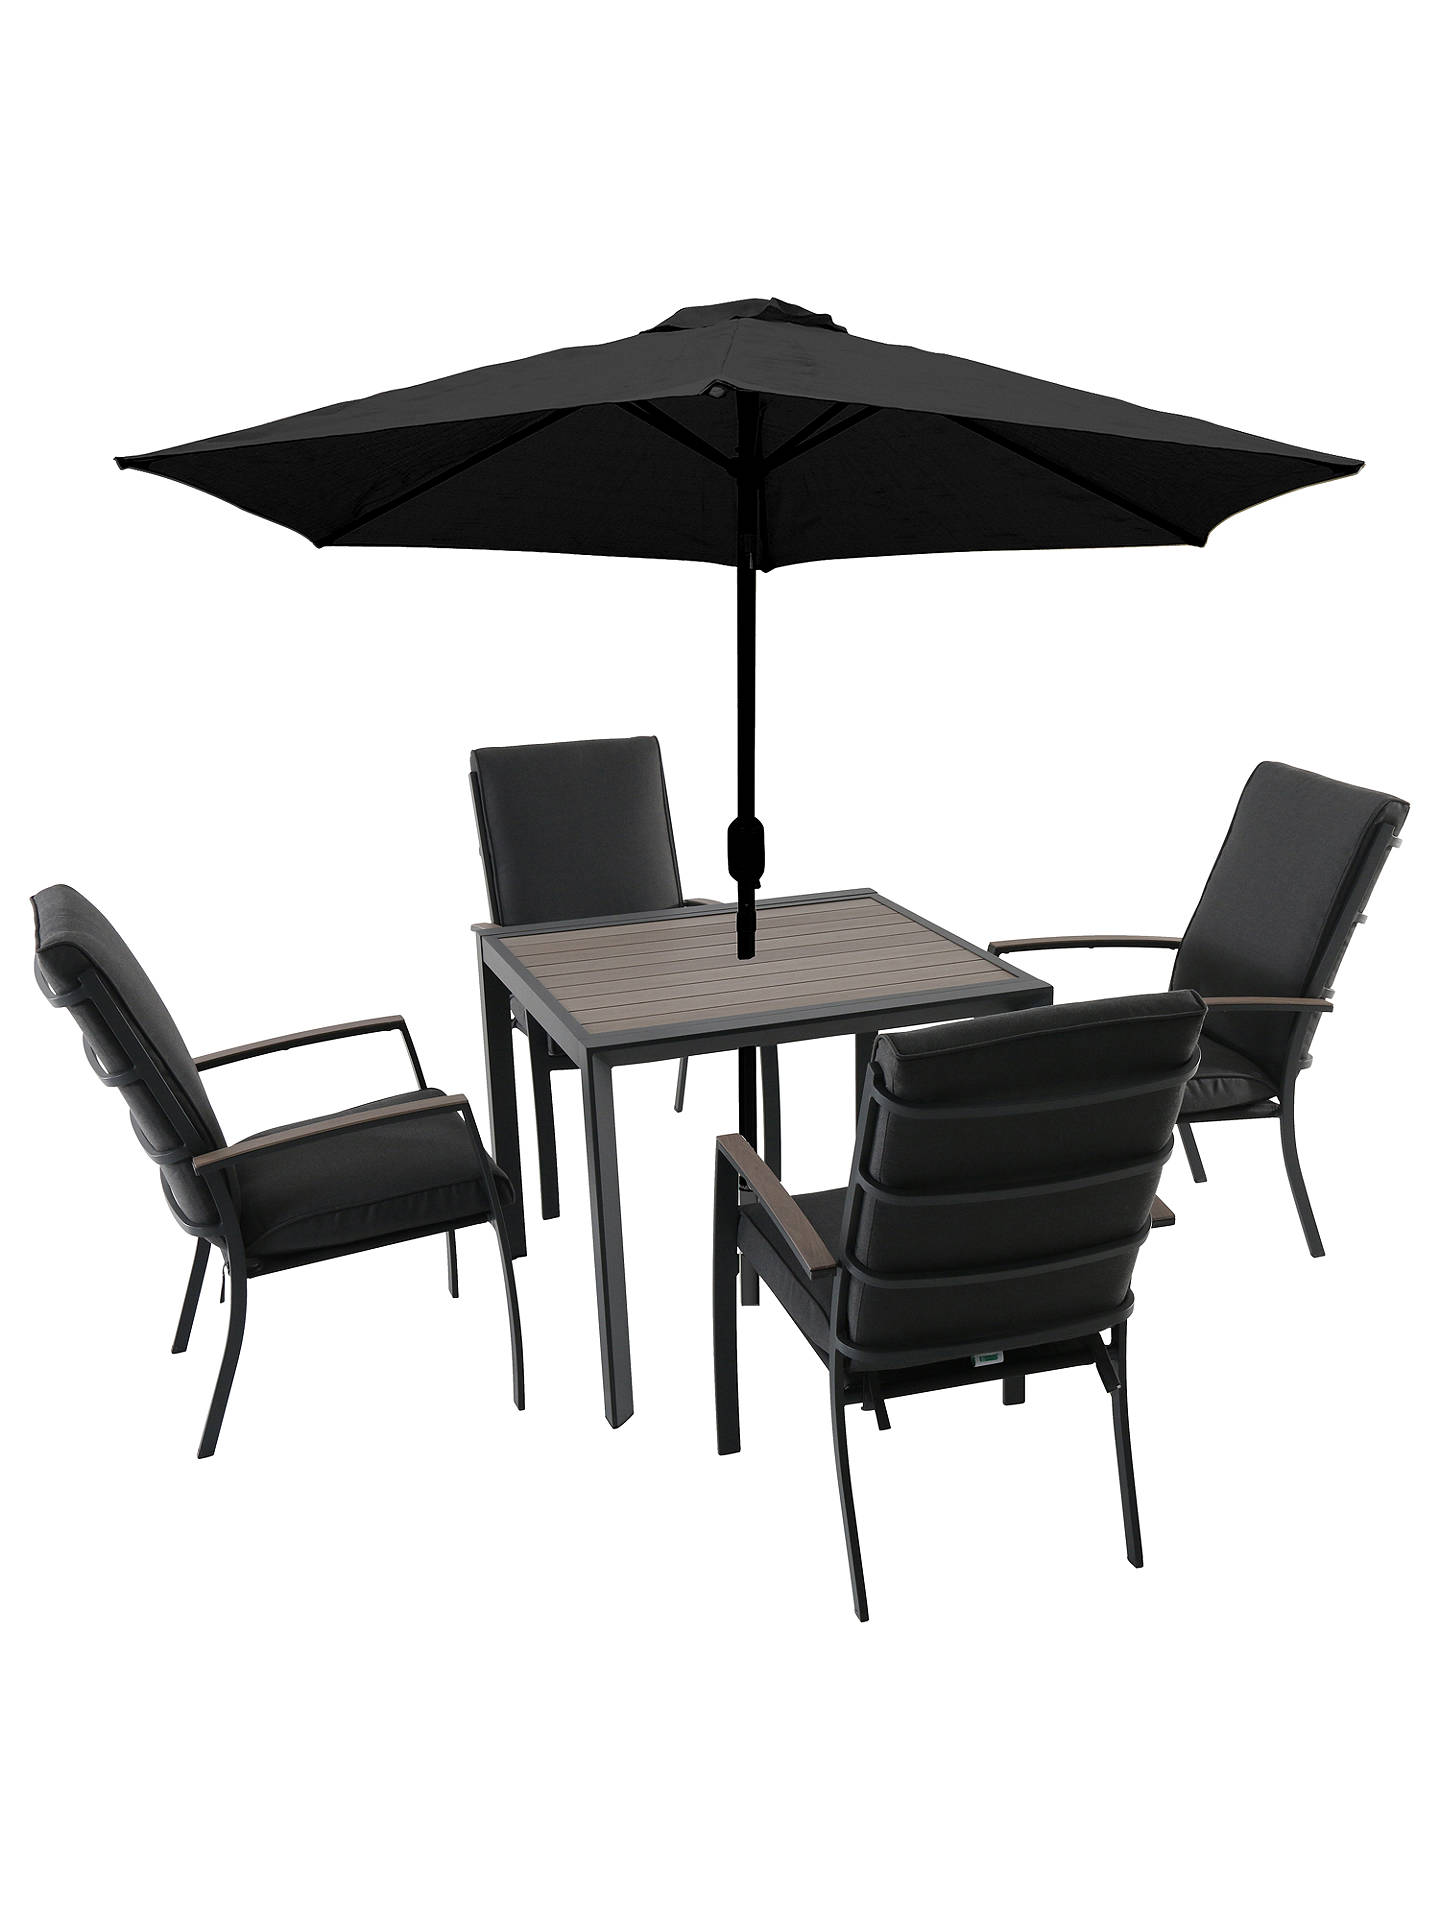 Buylg outdoor milan 4 seater garden dining table chairs set with parasol online at johnlewis